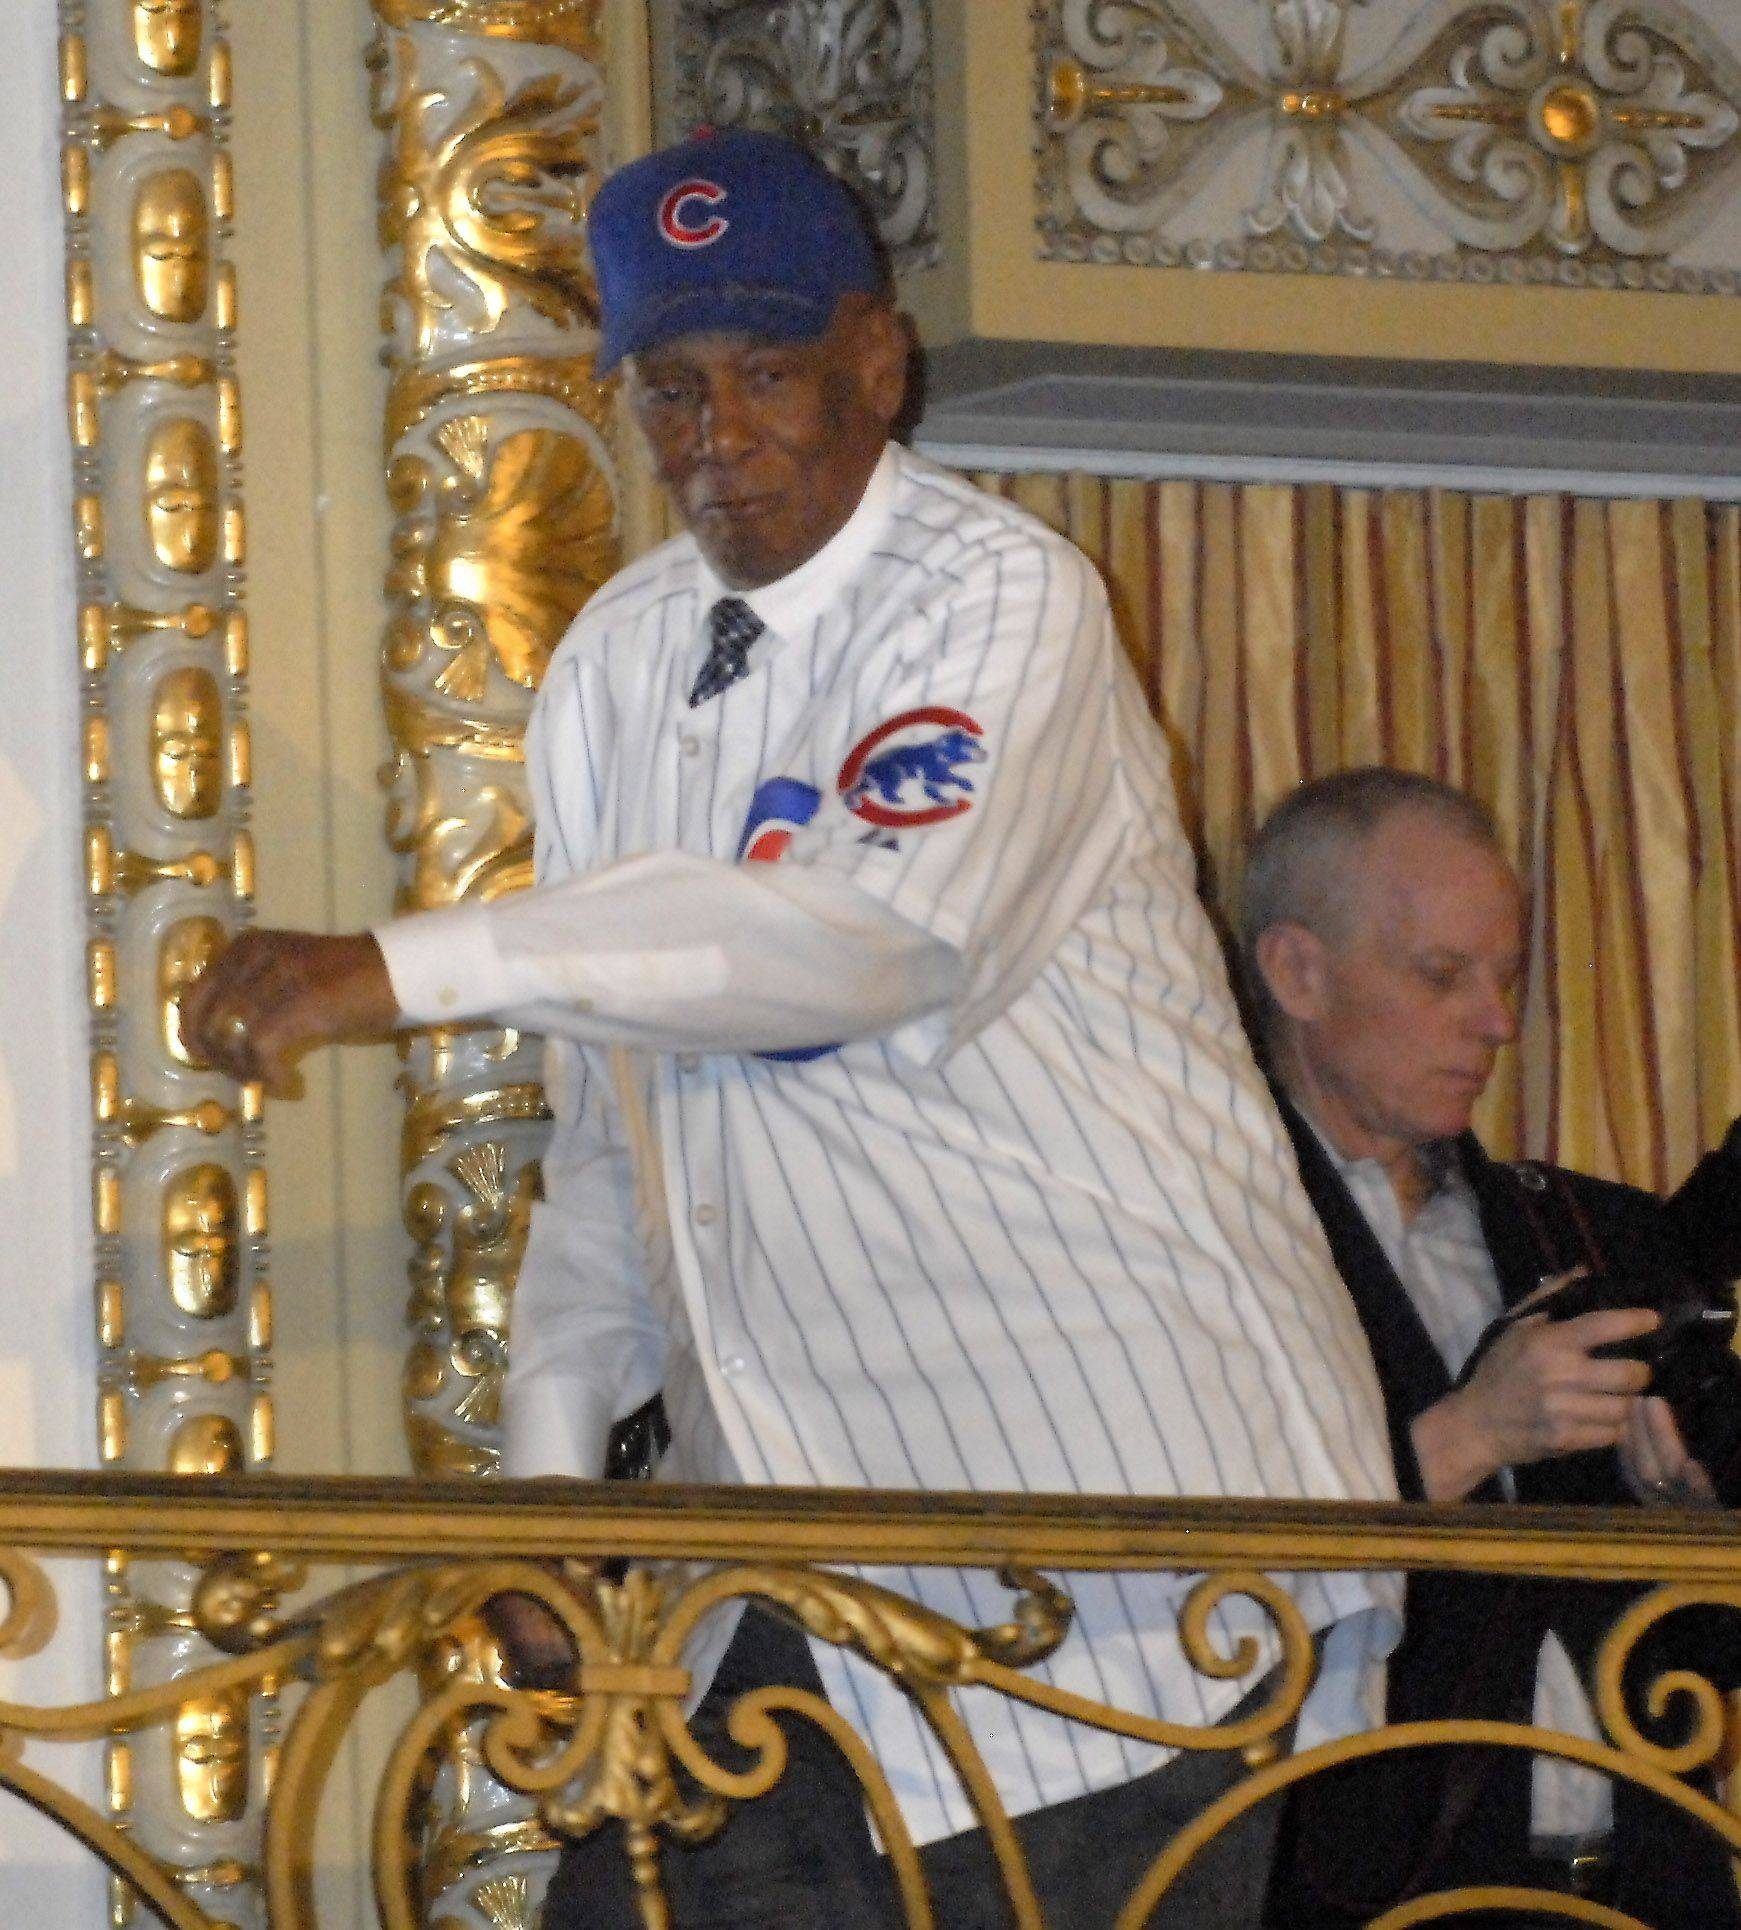 """Mr. Cub"" Ernie Banks hams it up during his introduction."